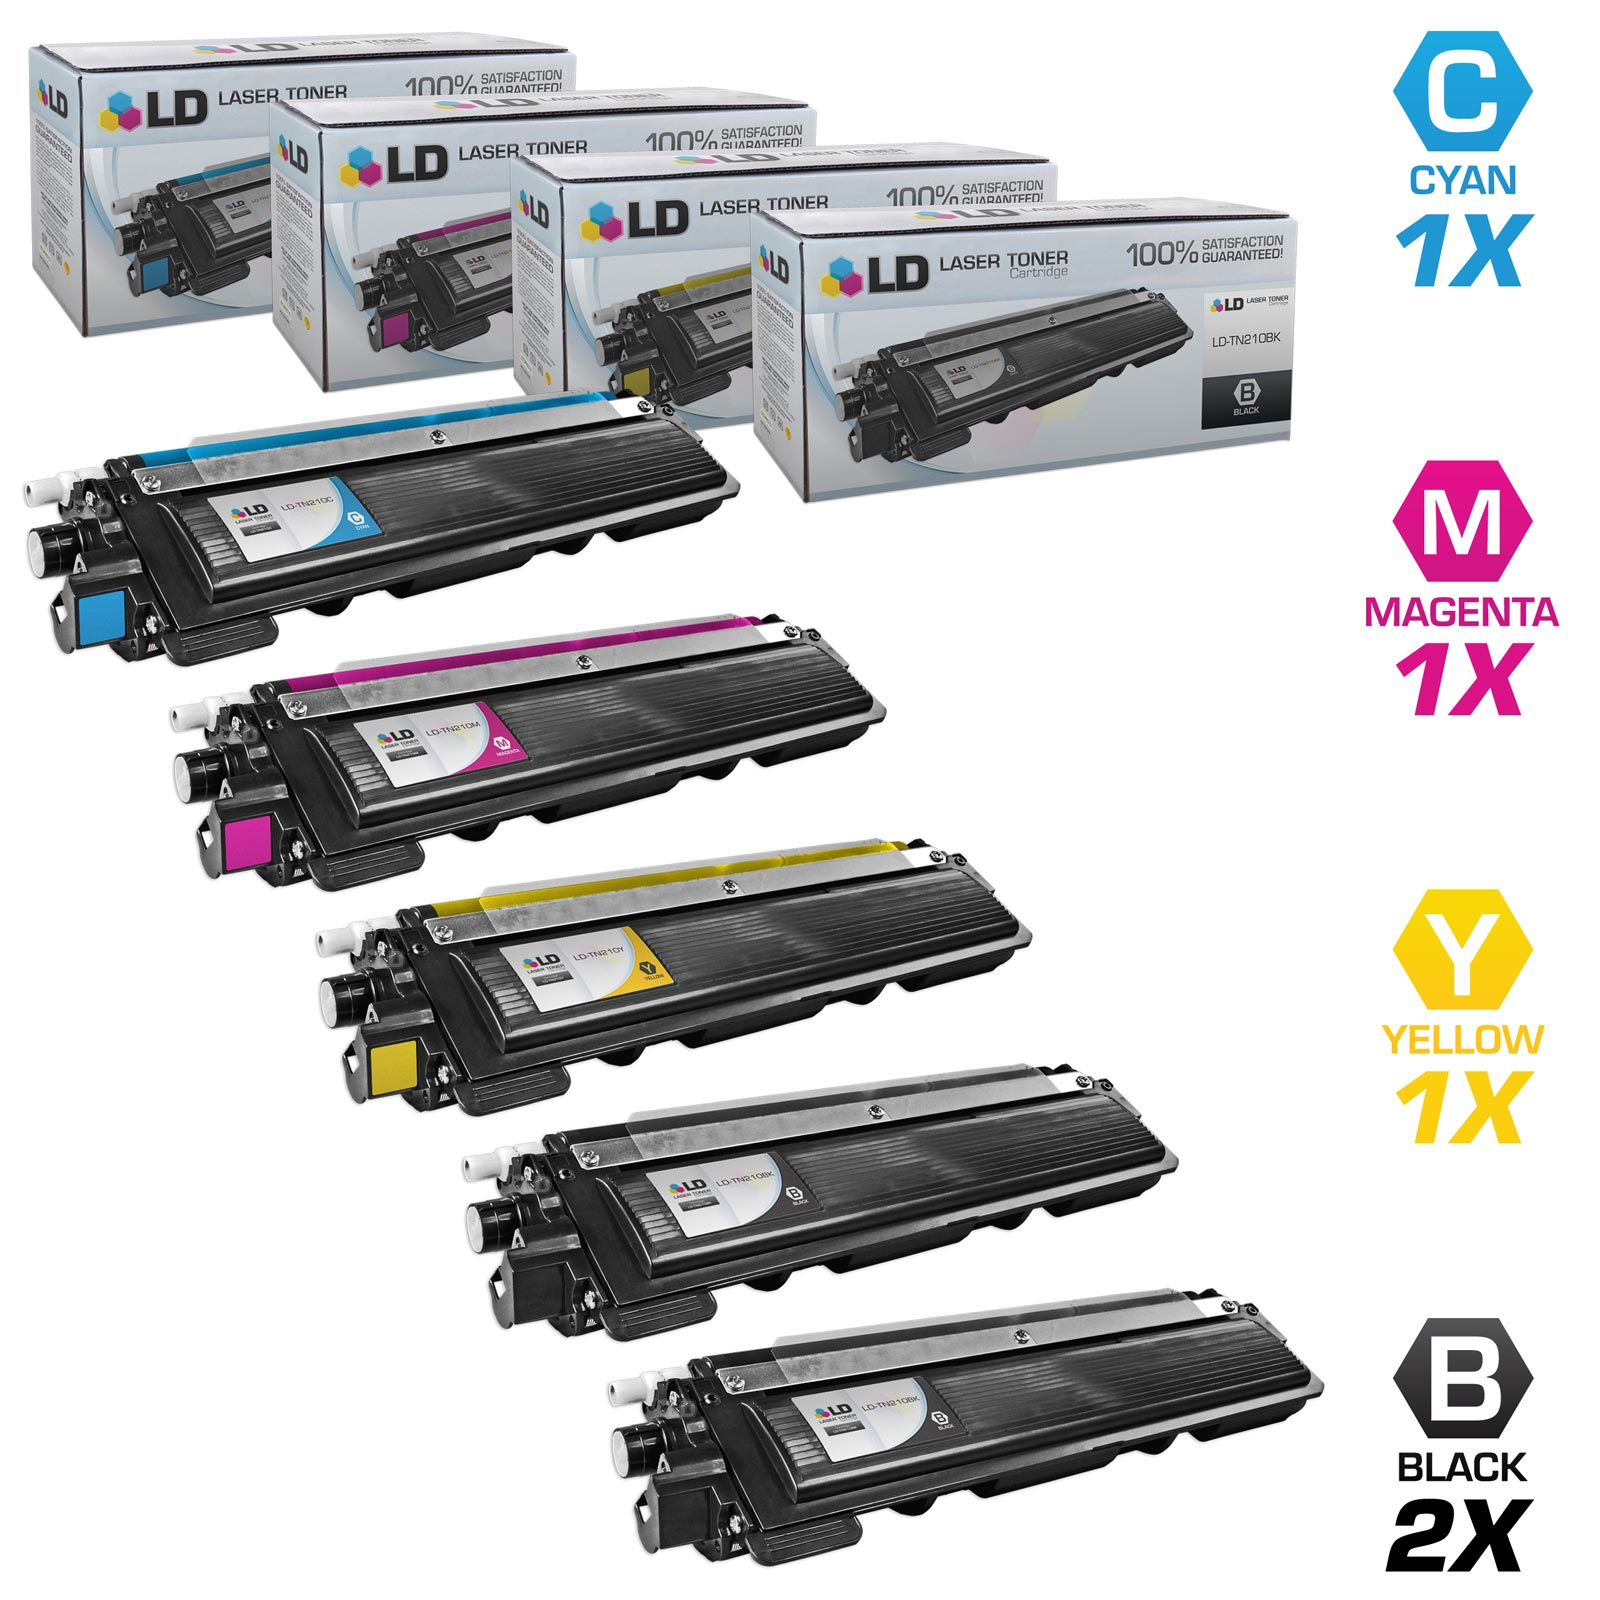 LD Brother Compatible TN-210 Set of 5 HY Toner Cartridges: 2 TN210BK & 1 TN210C, TN210M, & TN210Y for DCP-9010CN,